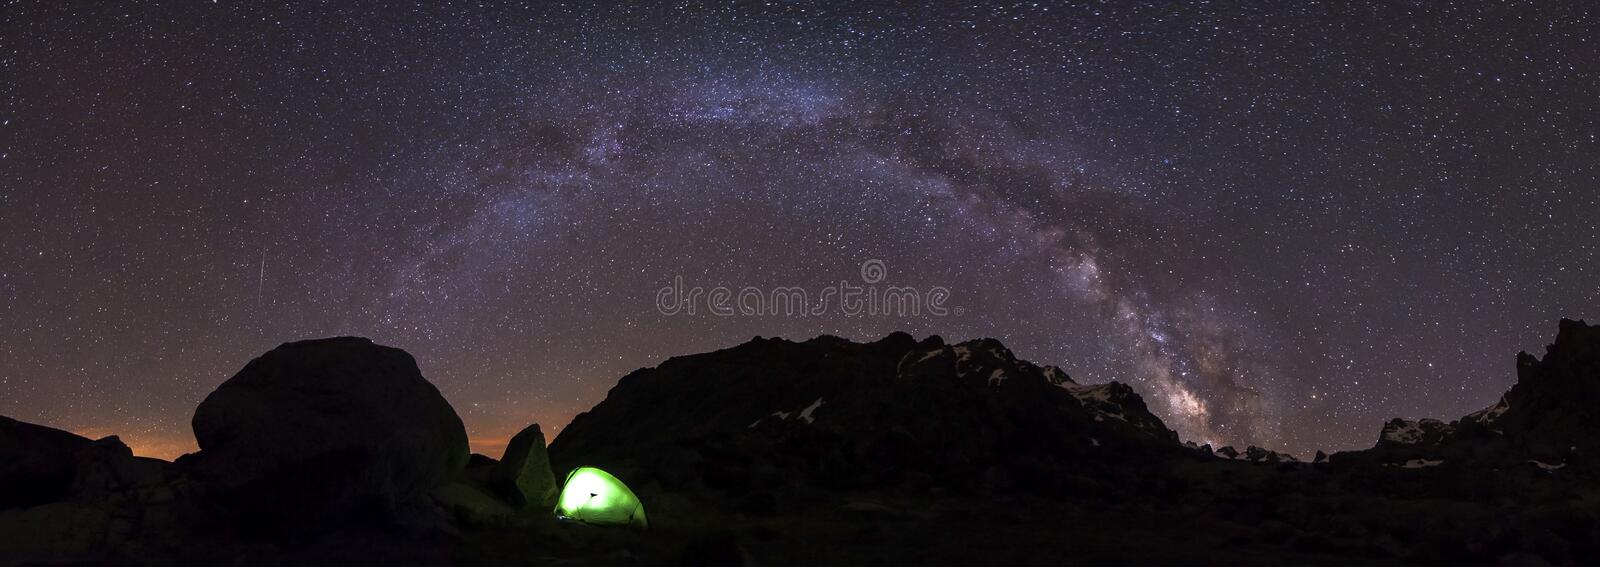 Adventurers will sleep in a million stars hotel in a Bivouac Camping tent under milkyway arch. Panoramic photography shows the complete milkyway arch at night royalty free stock image